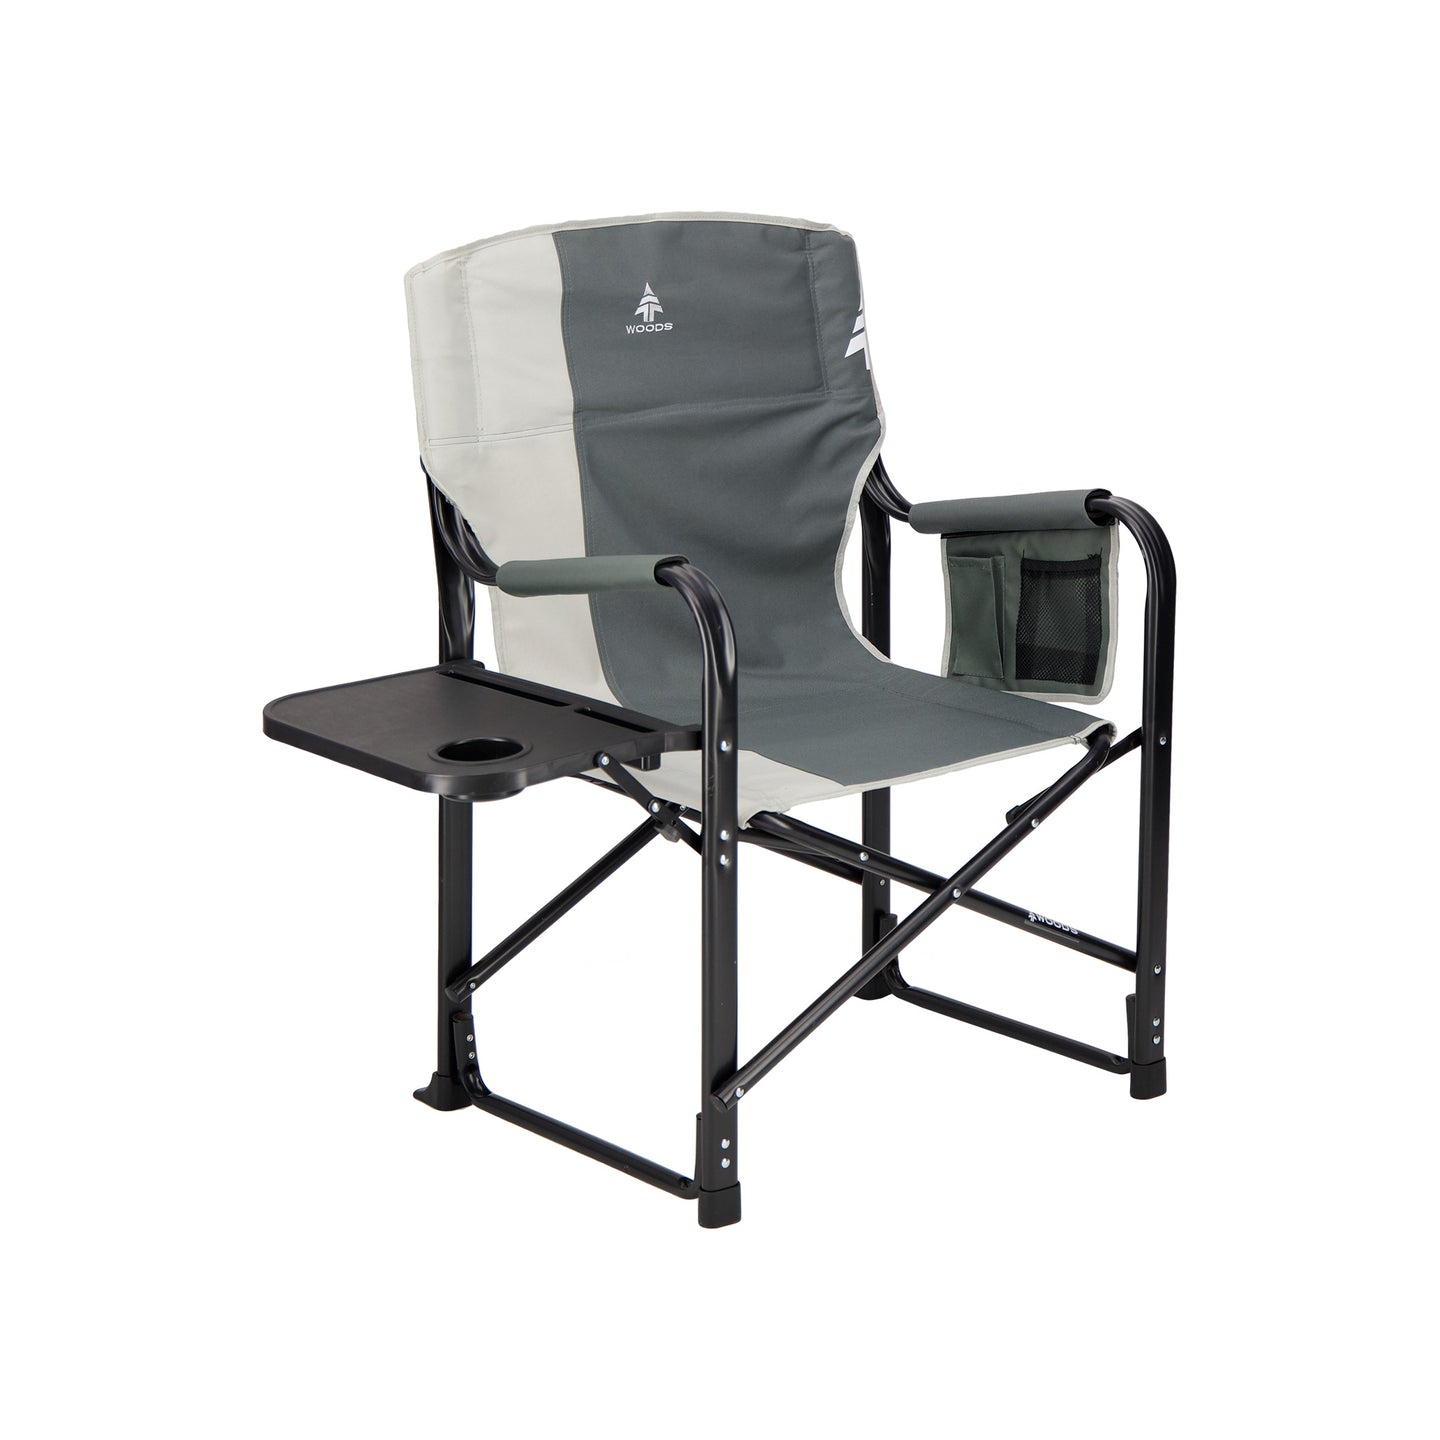 Woods Folding Directors Camping Chair With Table - Gun Metal